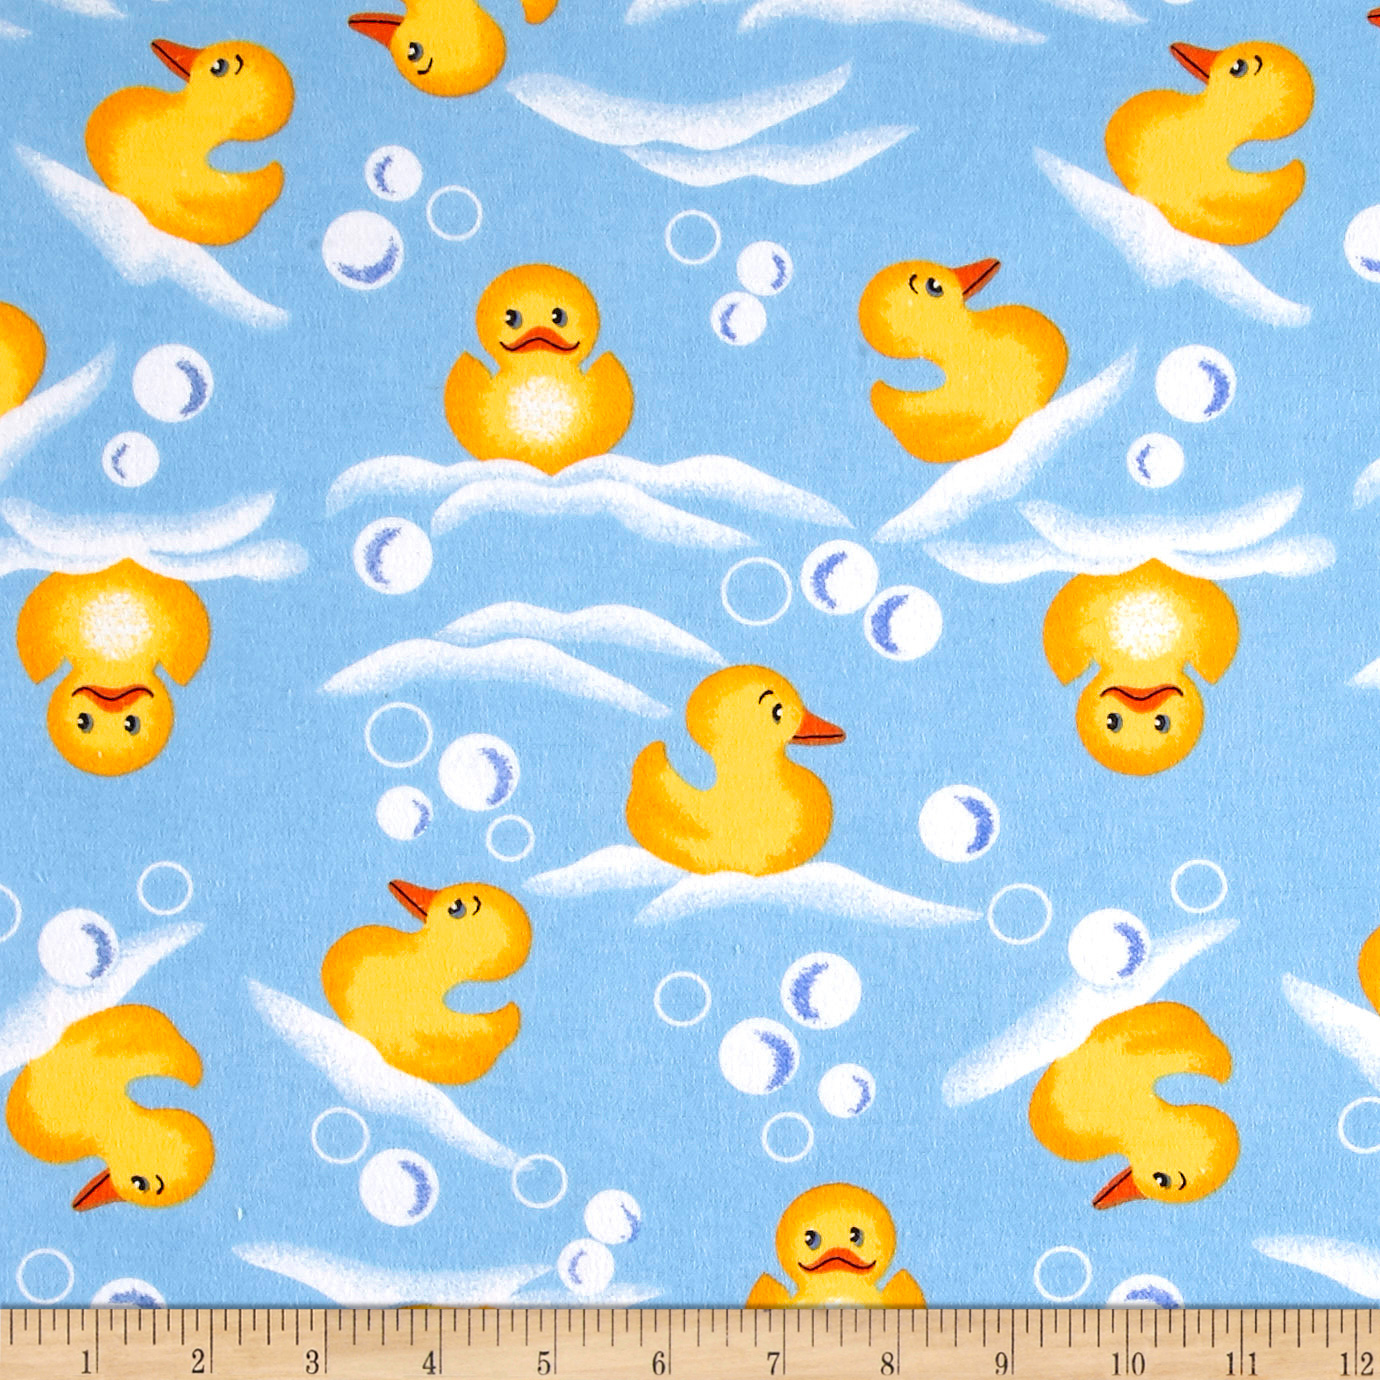 Comfy Flannel Prints Swimming Rubber Ducks Blue Fabric 0554915